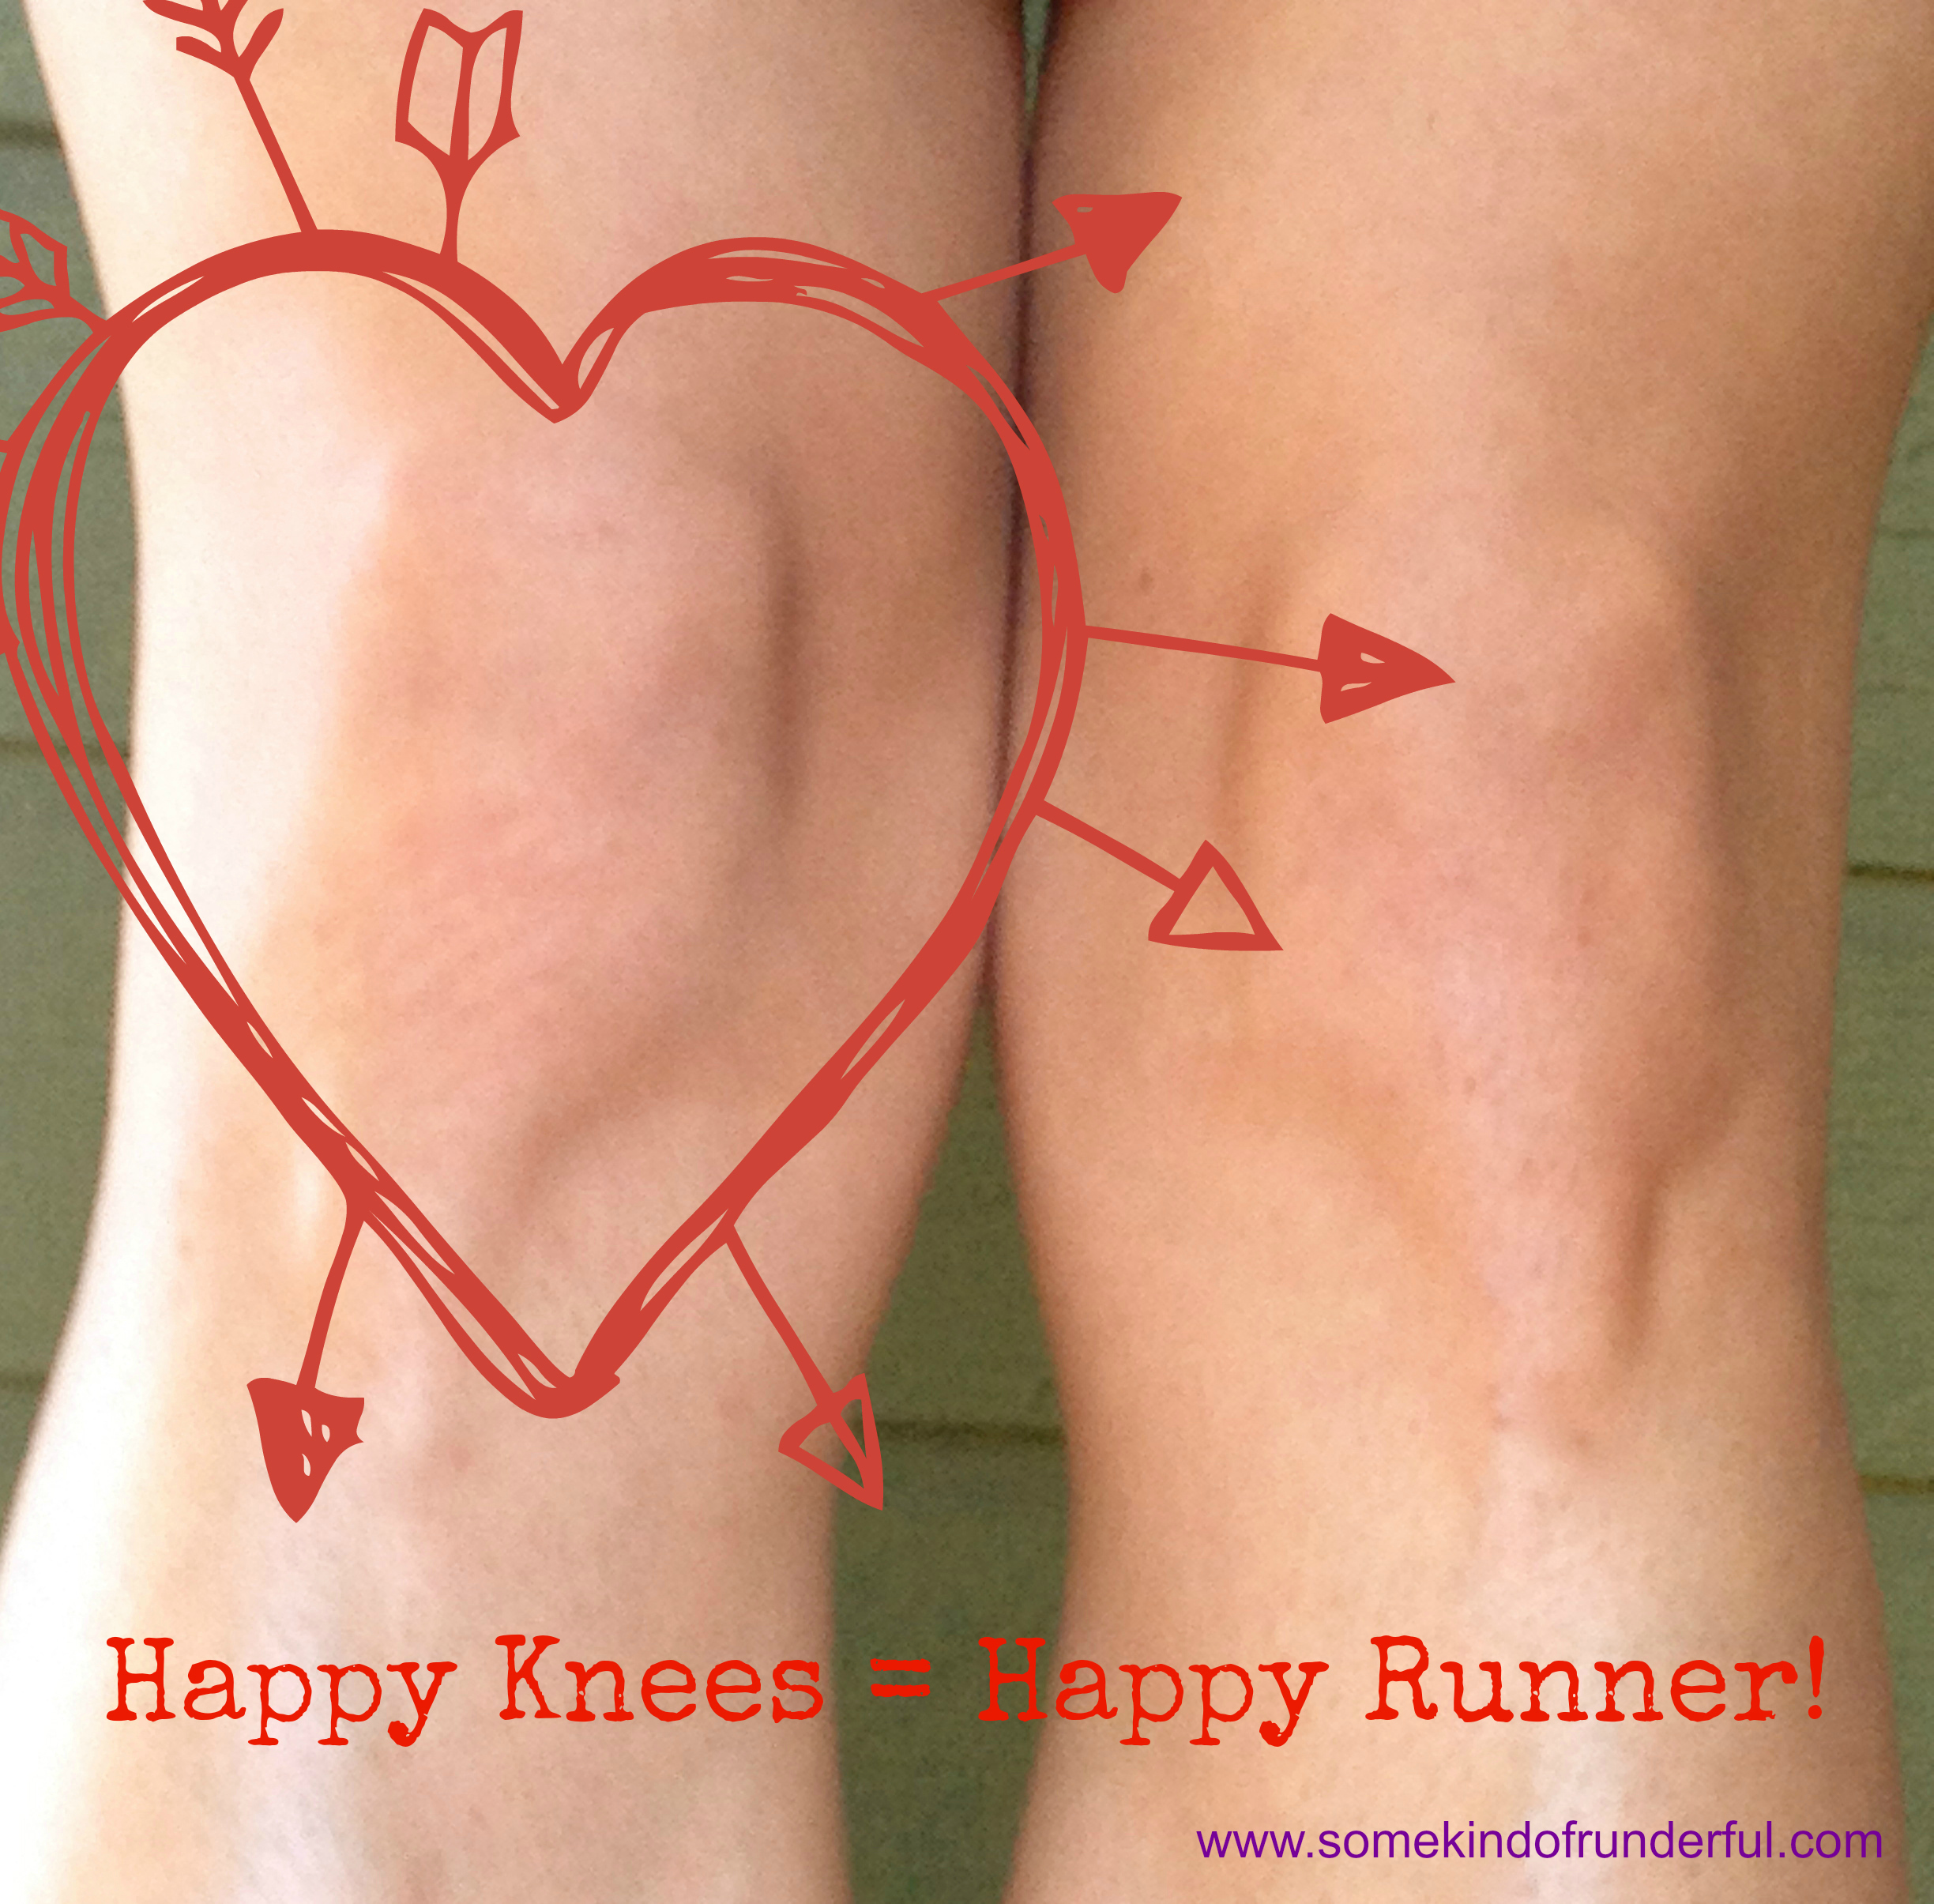 Running Reader Q My Knee Hurts When I Run Should I Get A